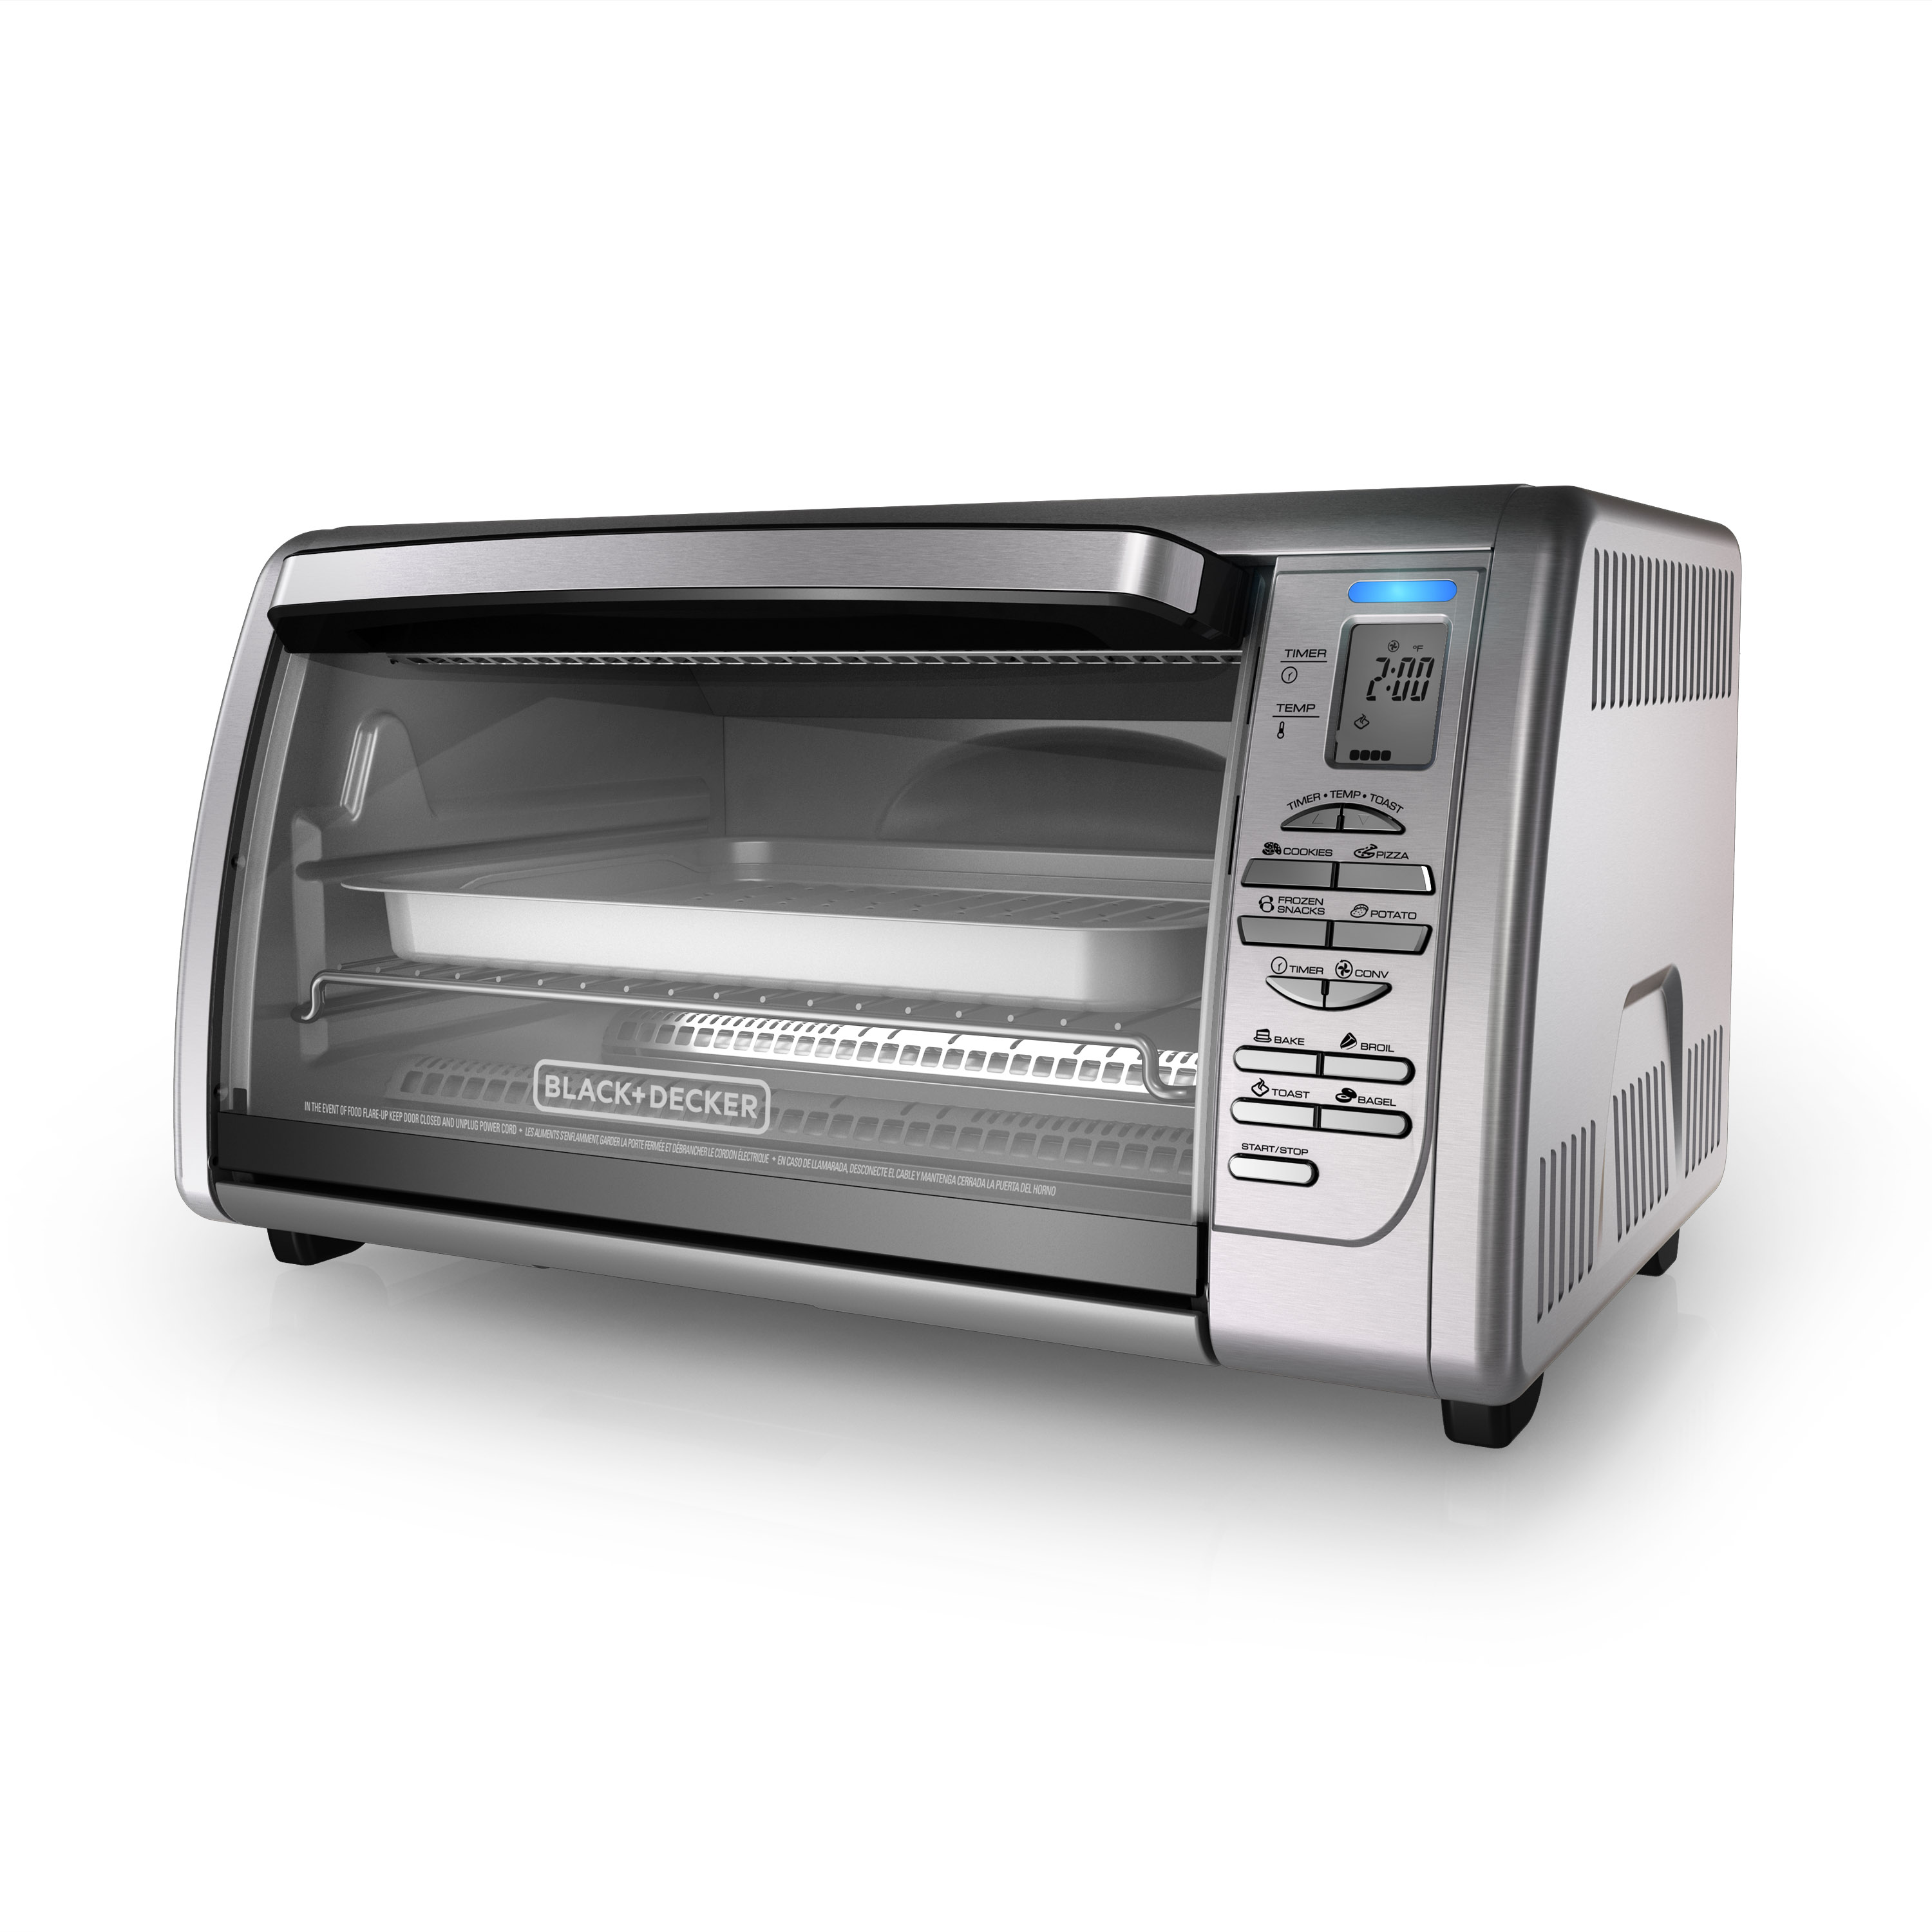 convection and toaster ovens cooking appliances black decker rh blackanddeckerappliances com